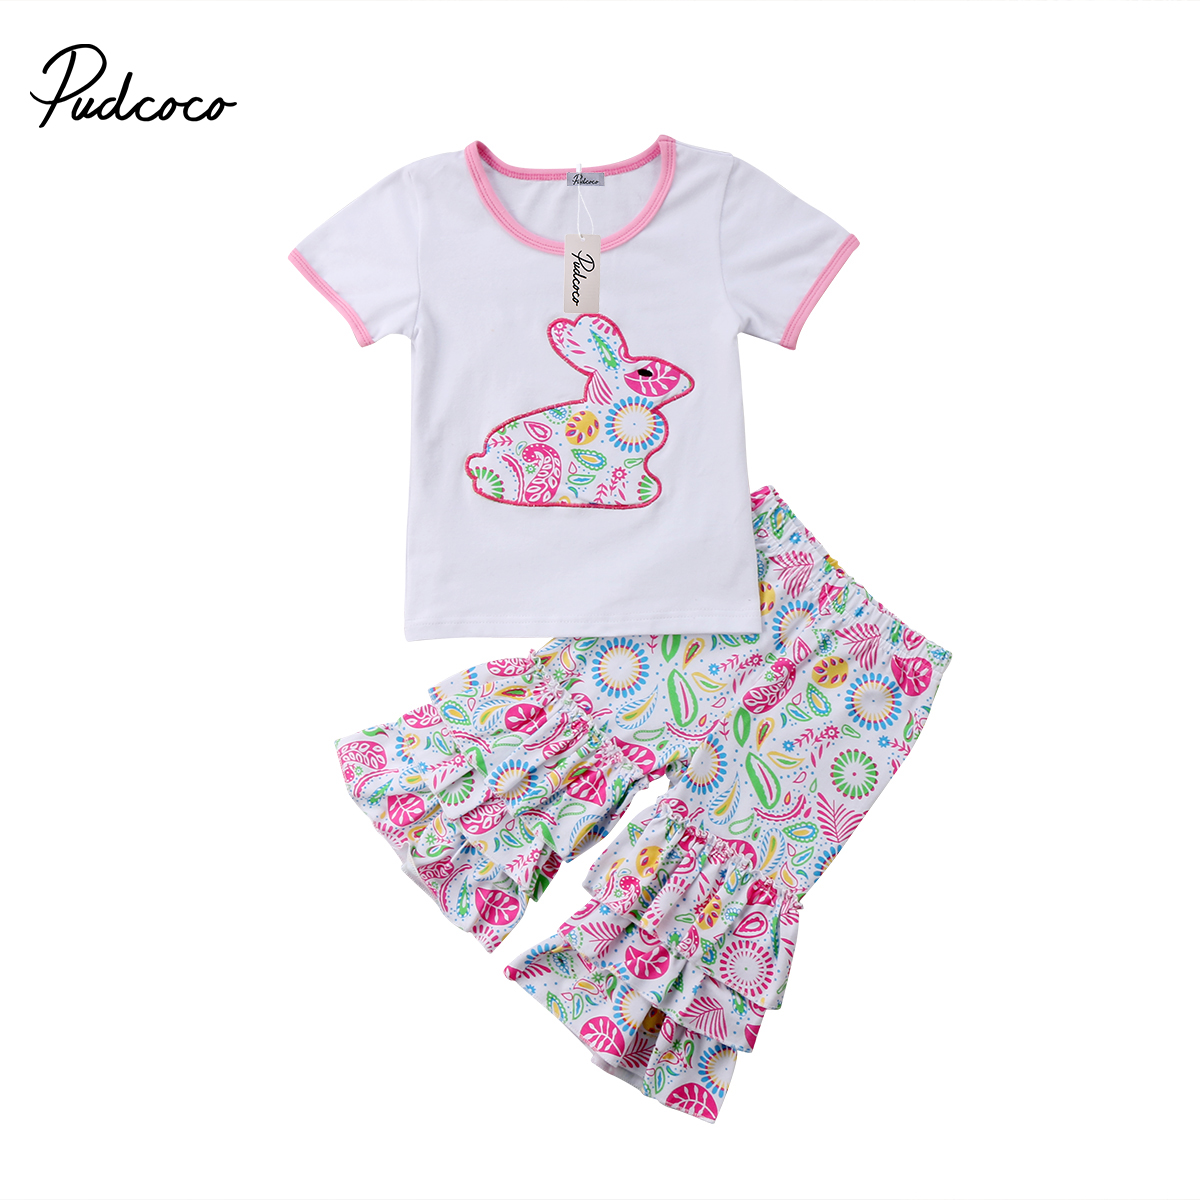 2pcs Newborn Kid Baby Girl Easter Set Floral Clothes Blouses+Long Pants Summer New Outfits 2pcs set newborn floral baby girl clothes 2017 summer sleeveless cotton ruffles romper baby bodysuit headband outfits sunsuit